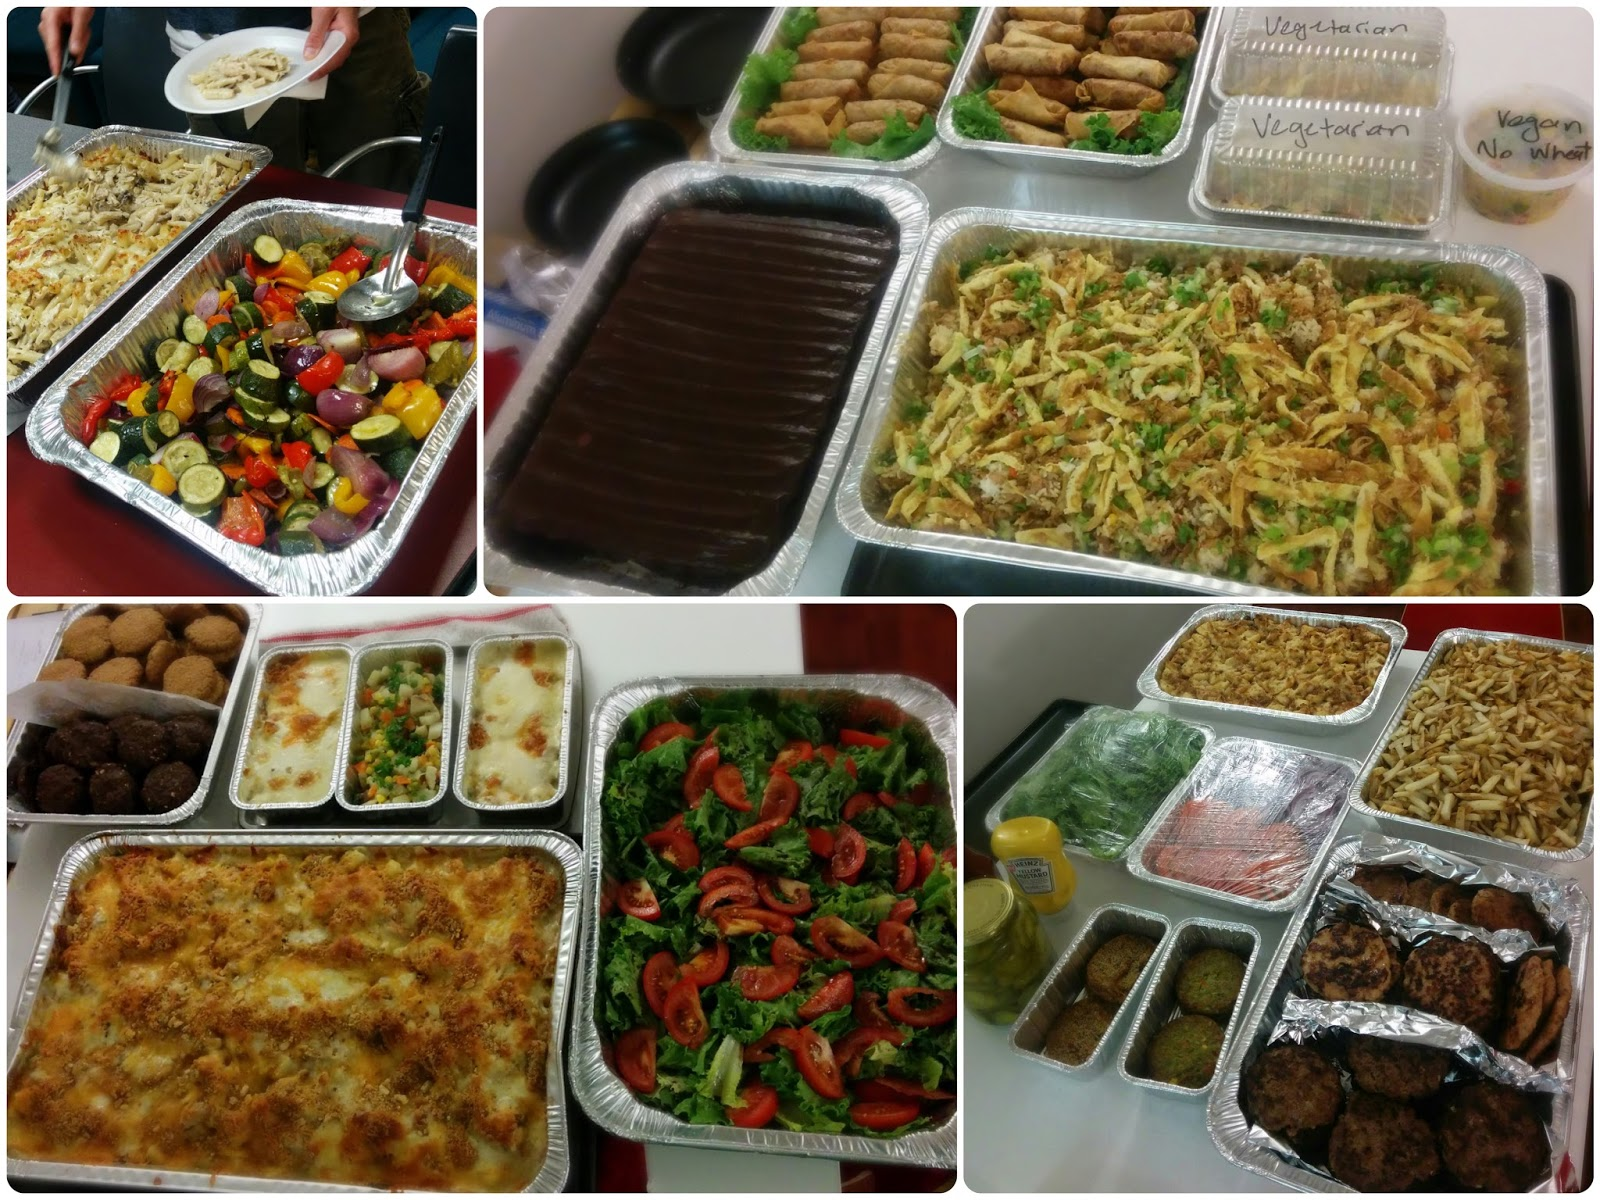 Essay about catering service